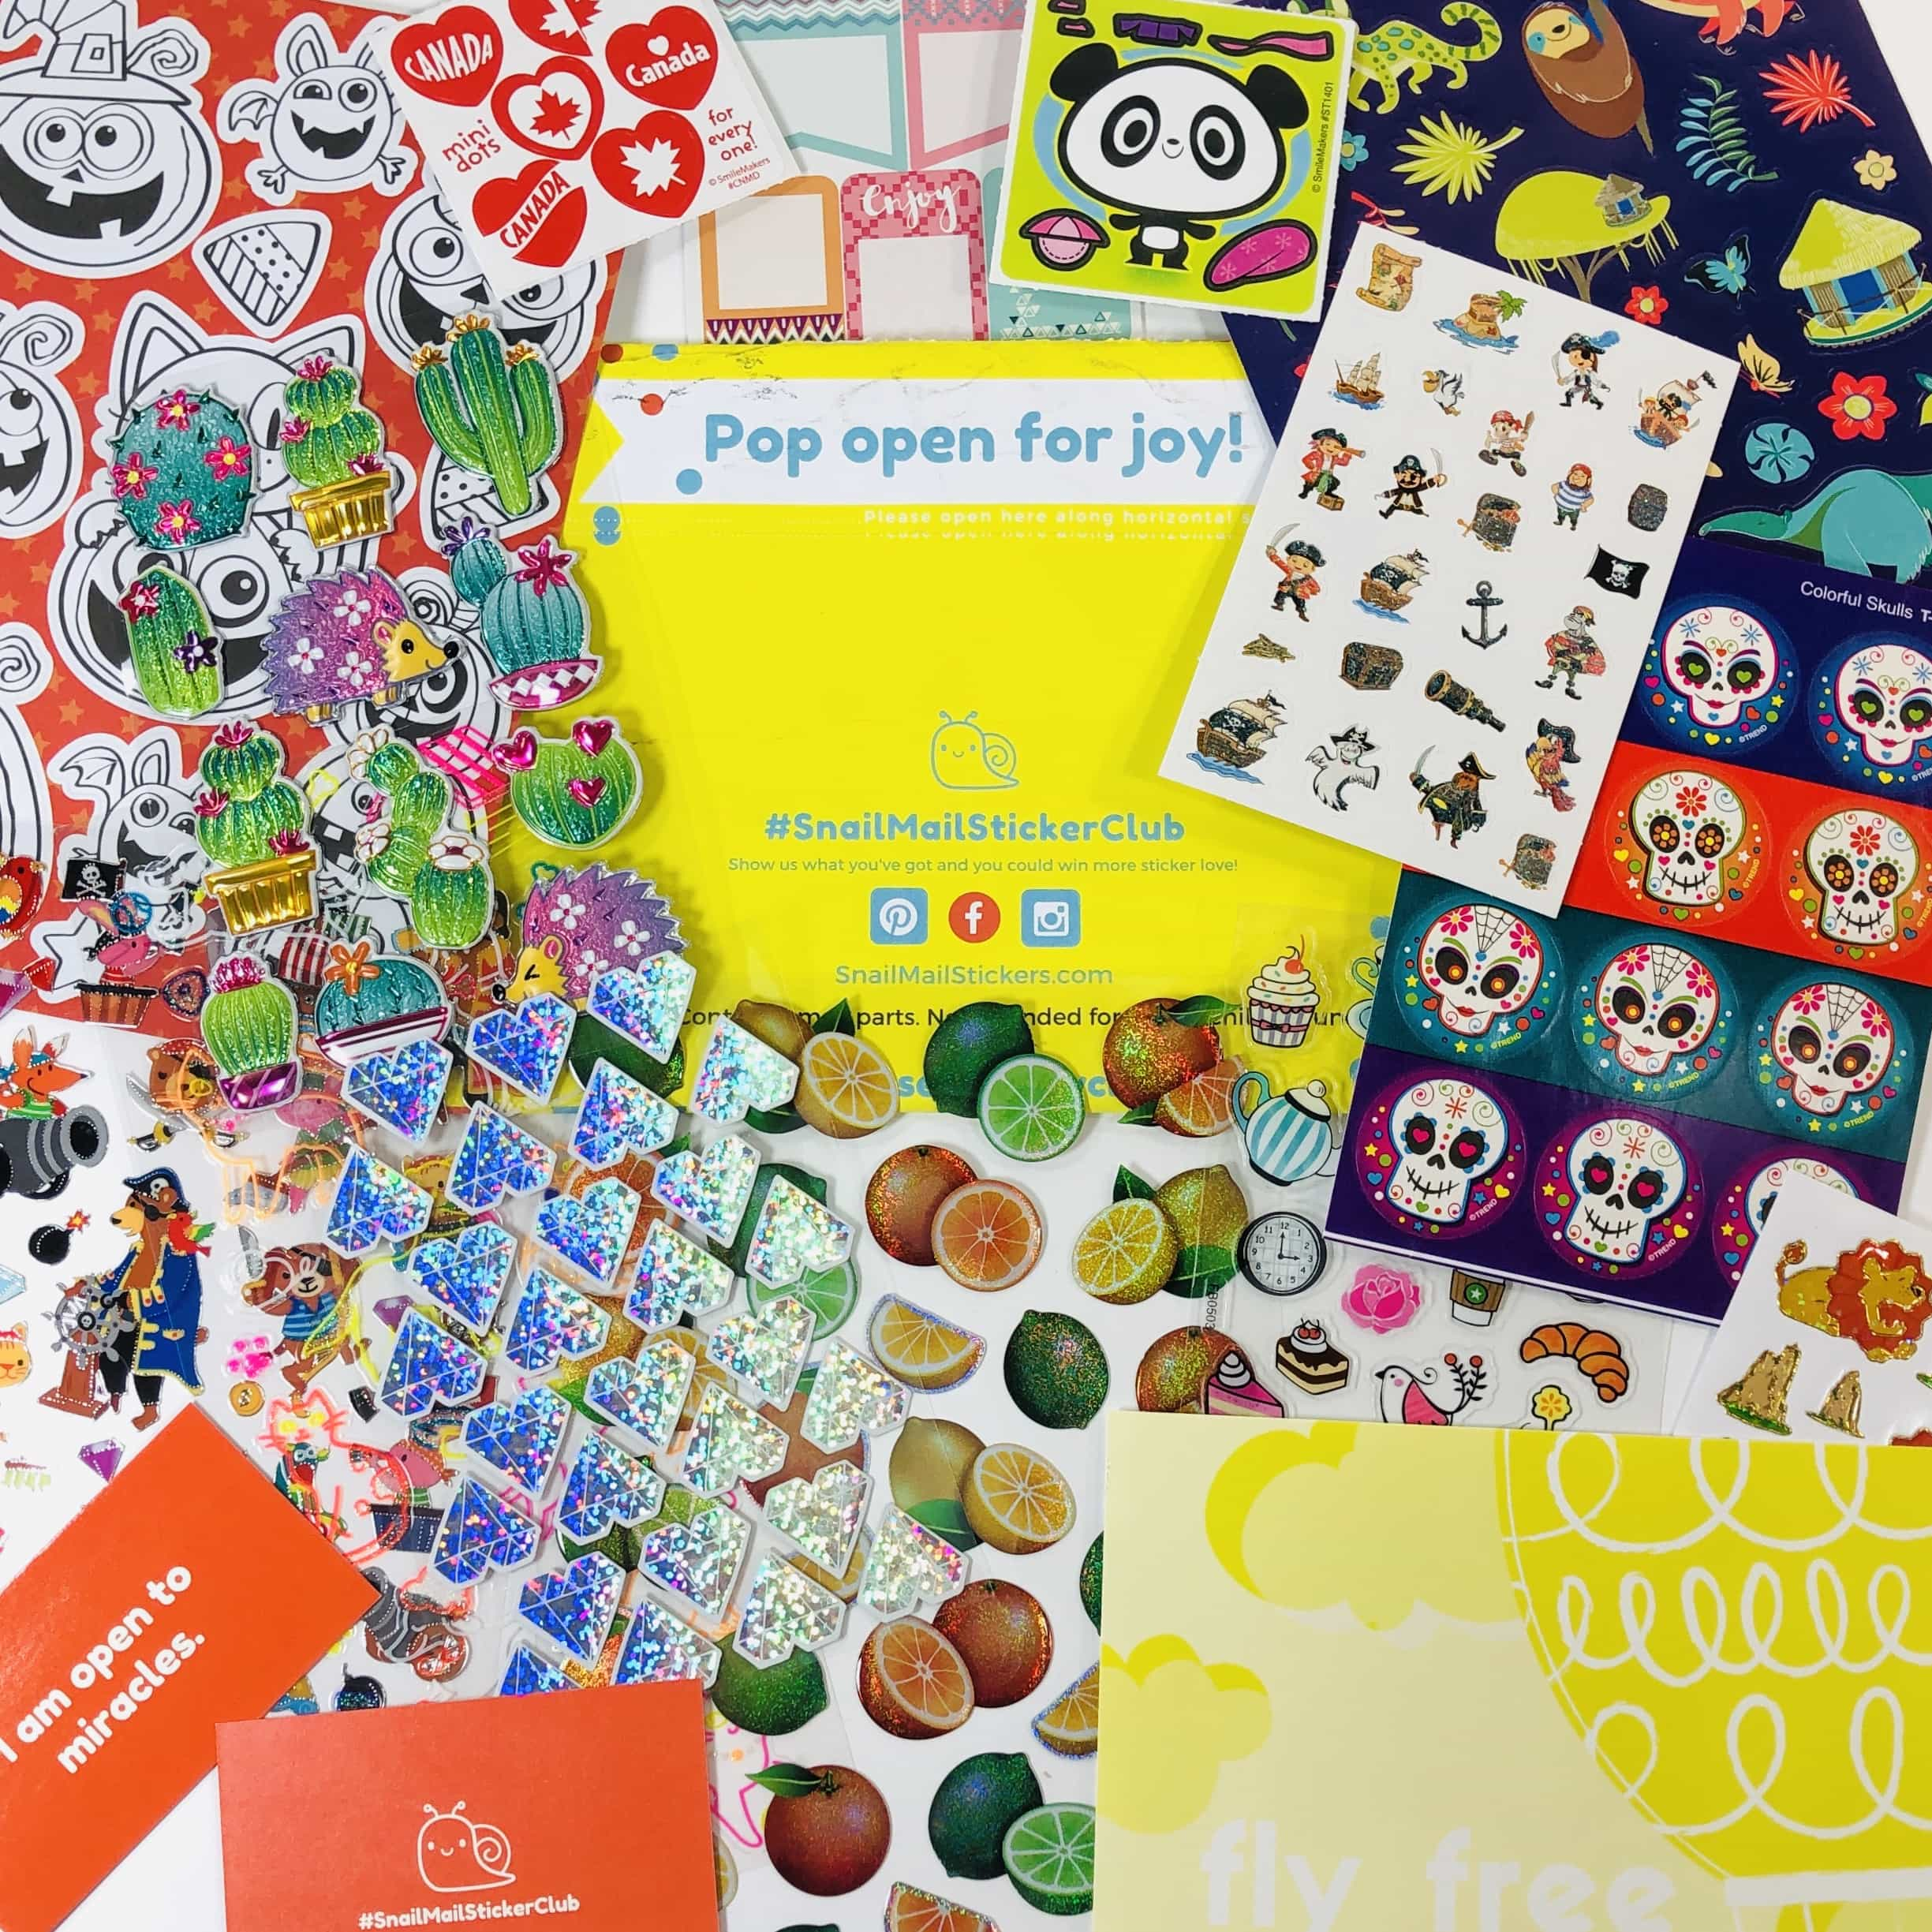 Snail Mail Sticker Club October 2019 Subscription Box Review + Coupon